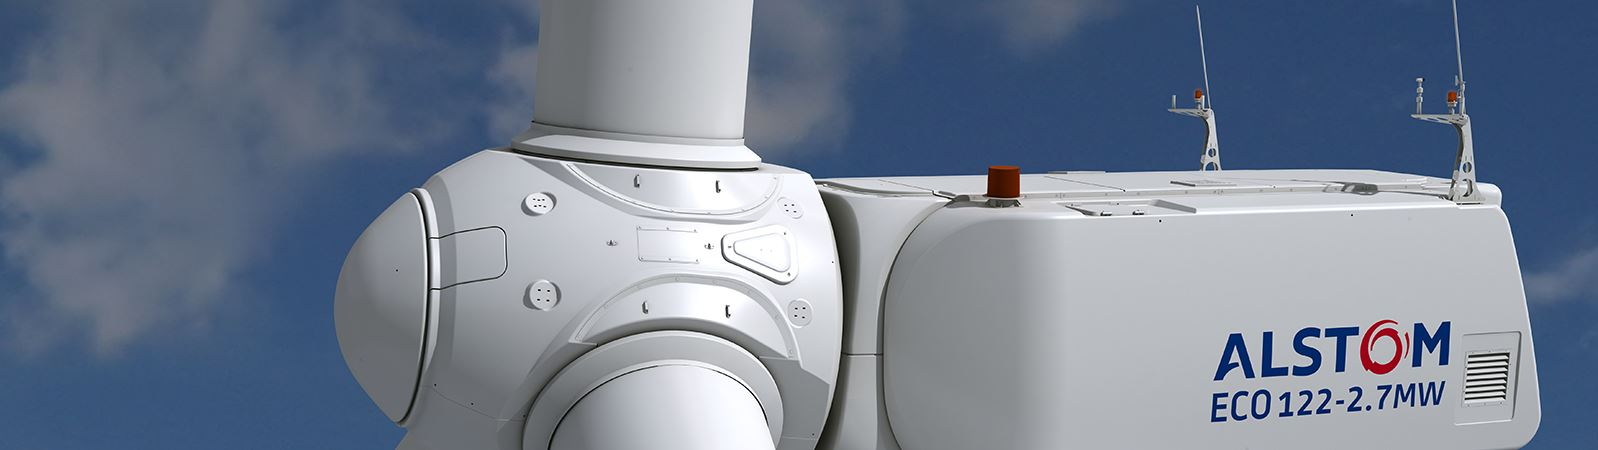 header_alstom_windmill